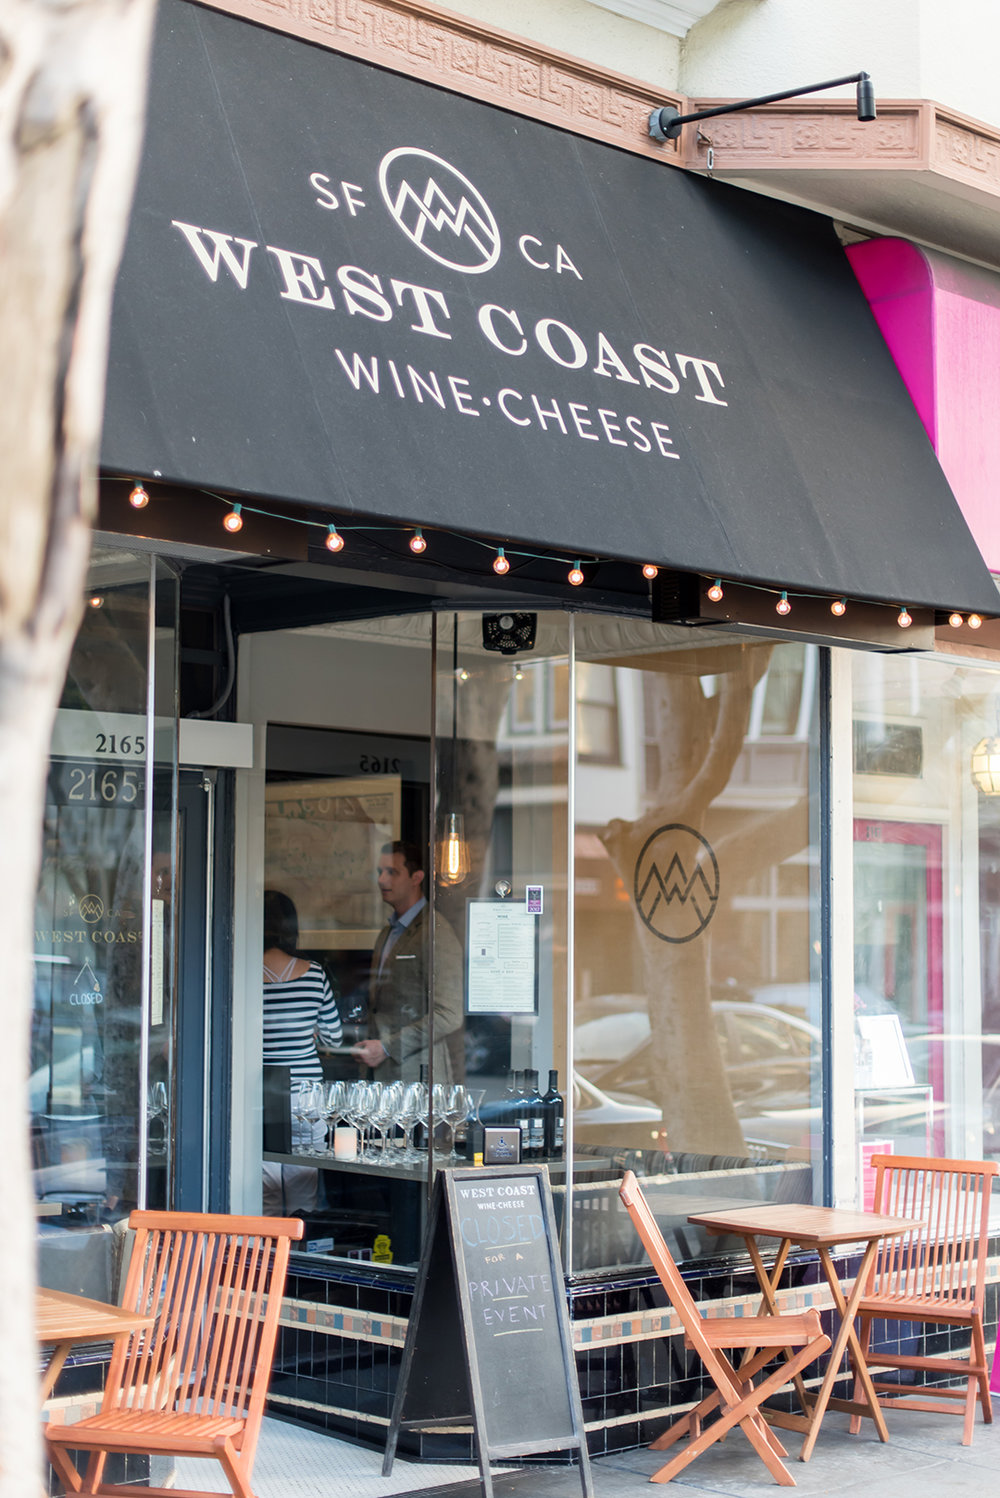 <b> Rally San Francisco </b> The 13 San Francisco Wine Bars We Go To Again and Again, West Coast Wine Cheese